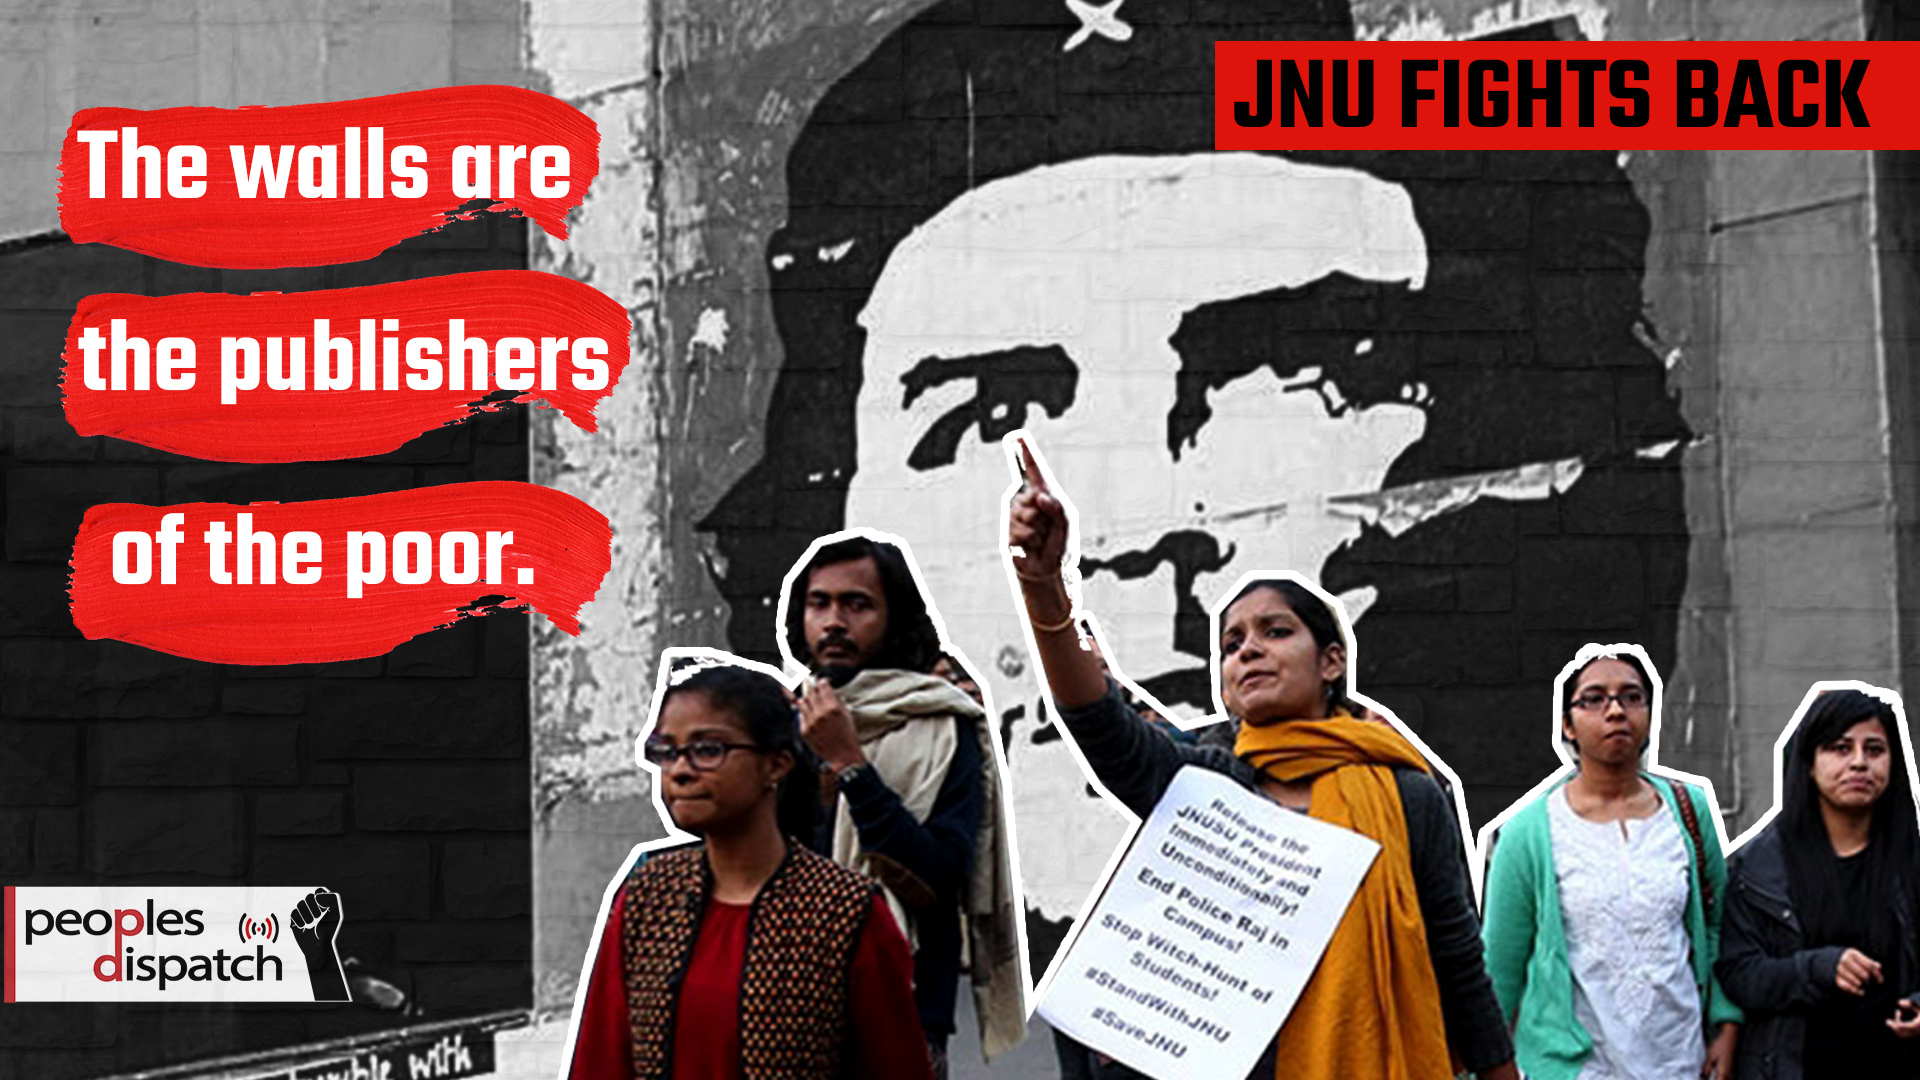 The Walls are publishers of the poor_JNU wall posters